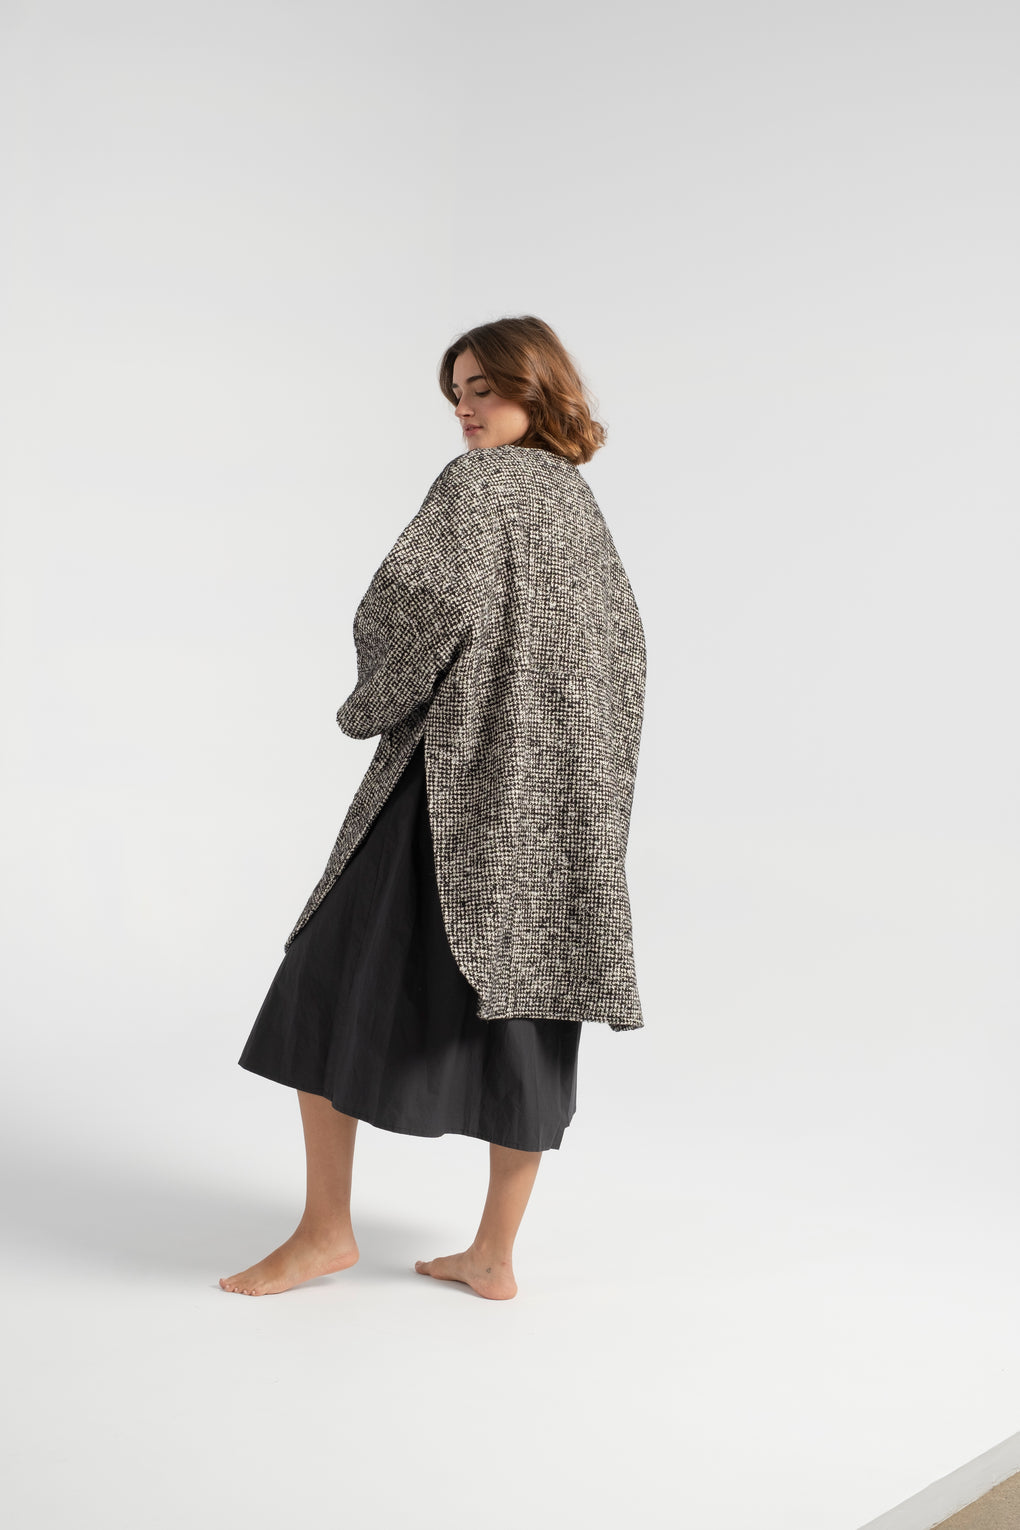 Apiece Apart-Apiece Apart Fatima Cape-houndstooth coat-houndstooth cape coat-cape coat-Apiece Apart coat-Apiece Apart cape coat-Idun-St. Paul